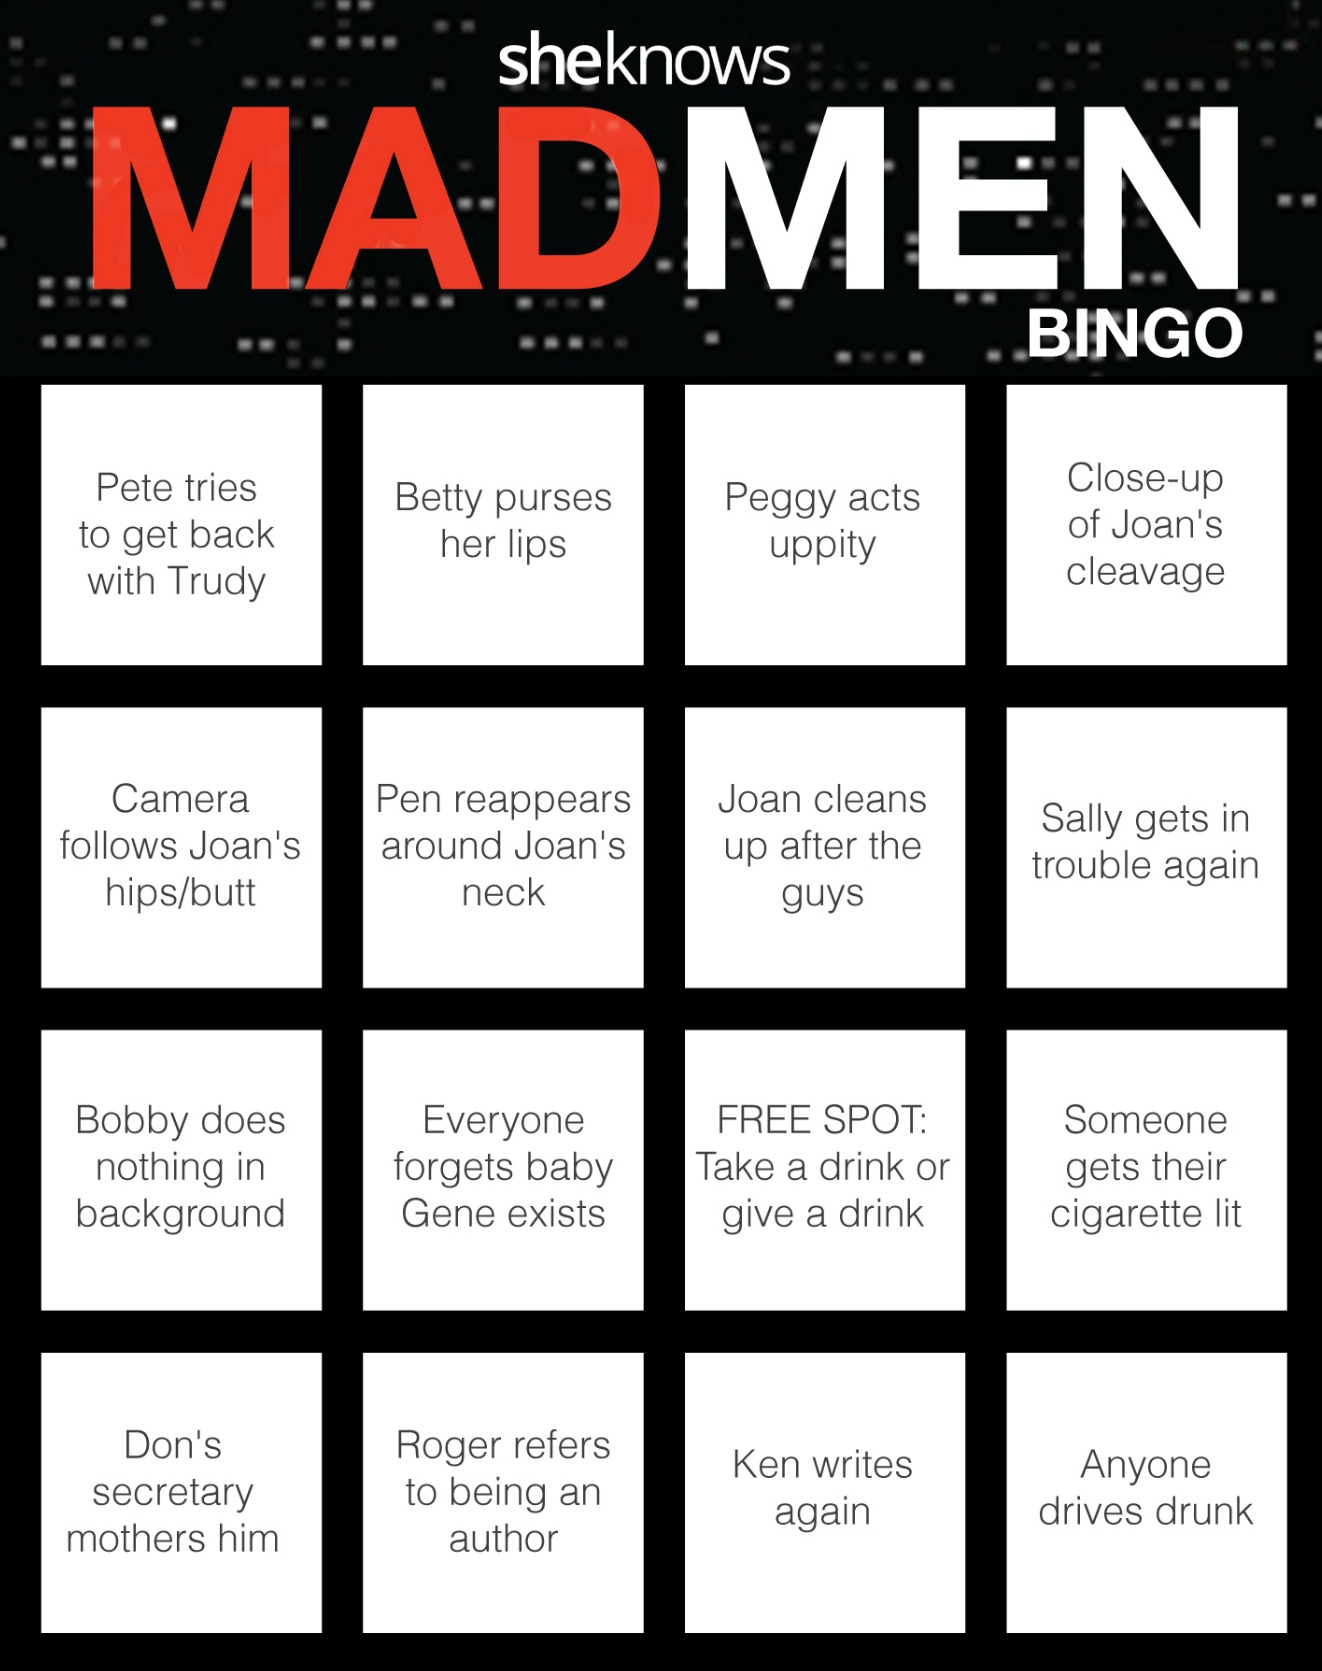 This Mad Men bingo game is the most fun you'll ever have drinking